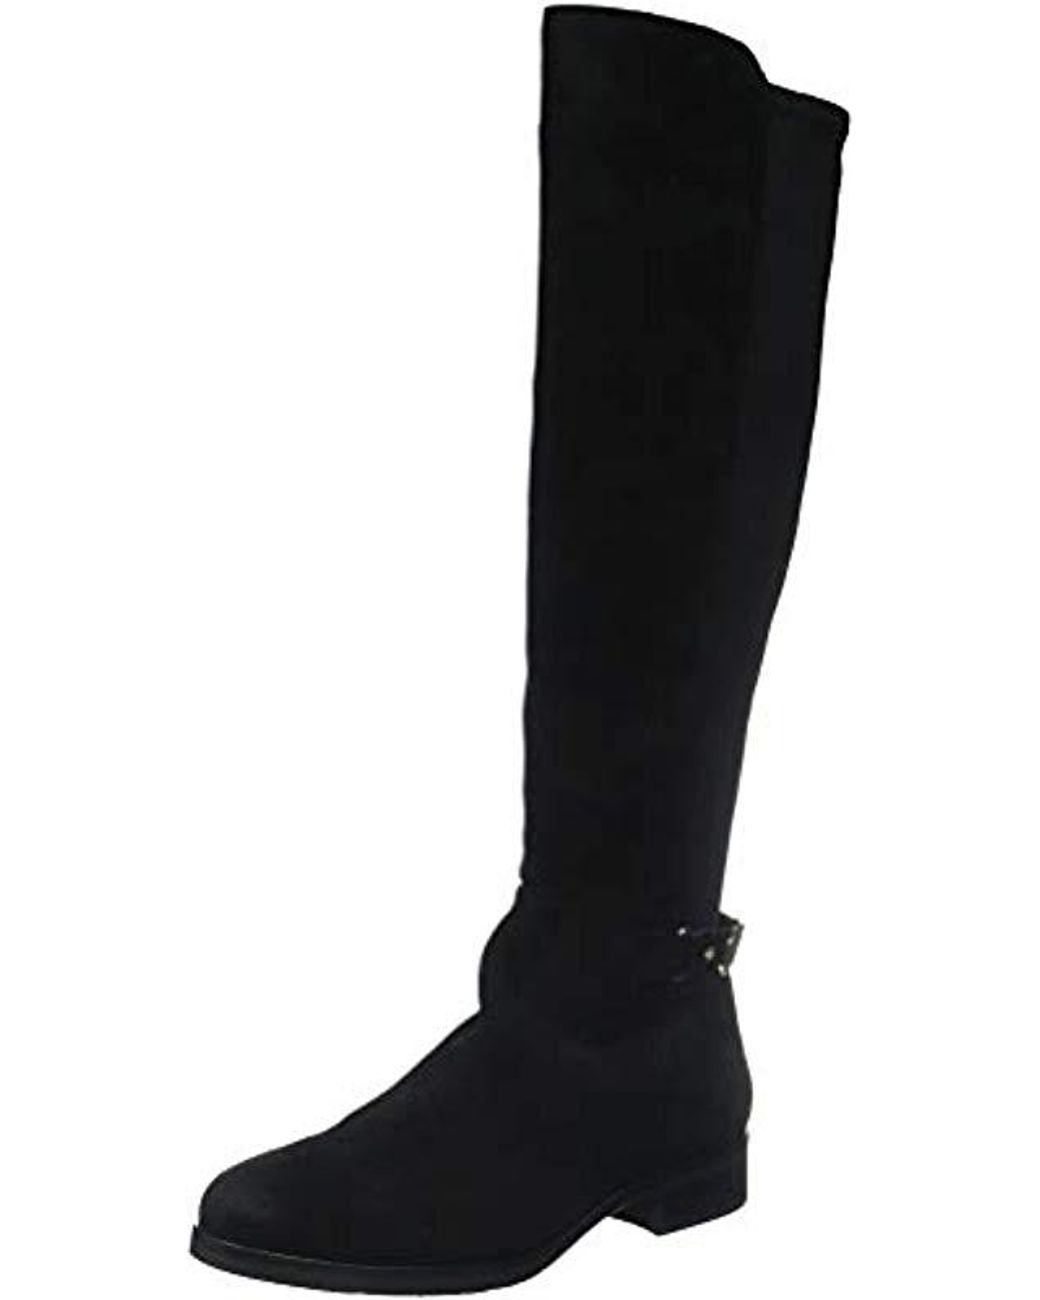 6d79339cf2c4d Tommy Hilfiger Th Buckle High Boot Stretch in Black - Lyst